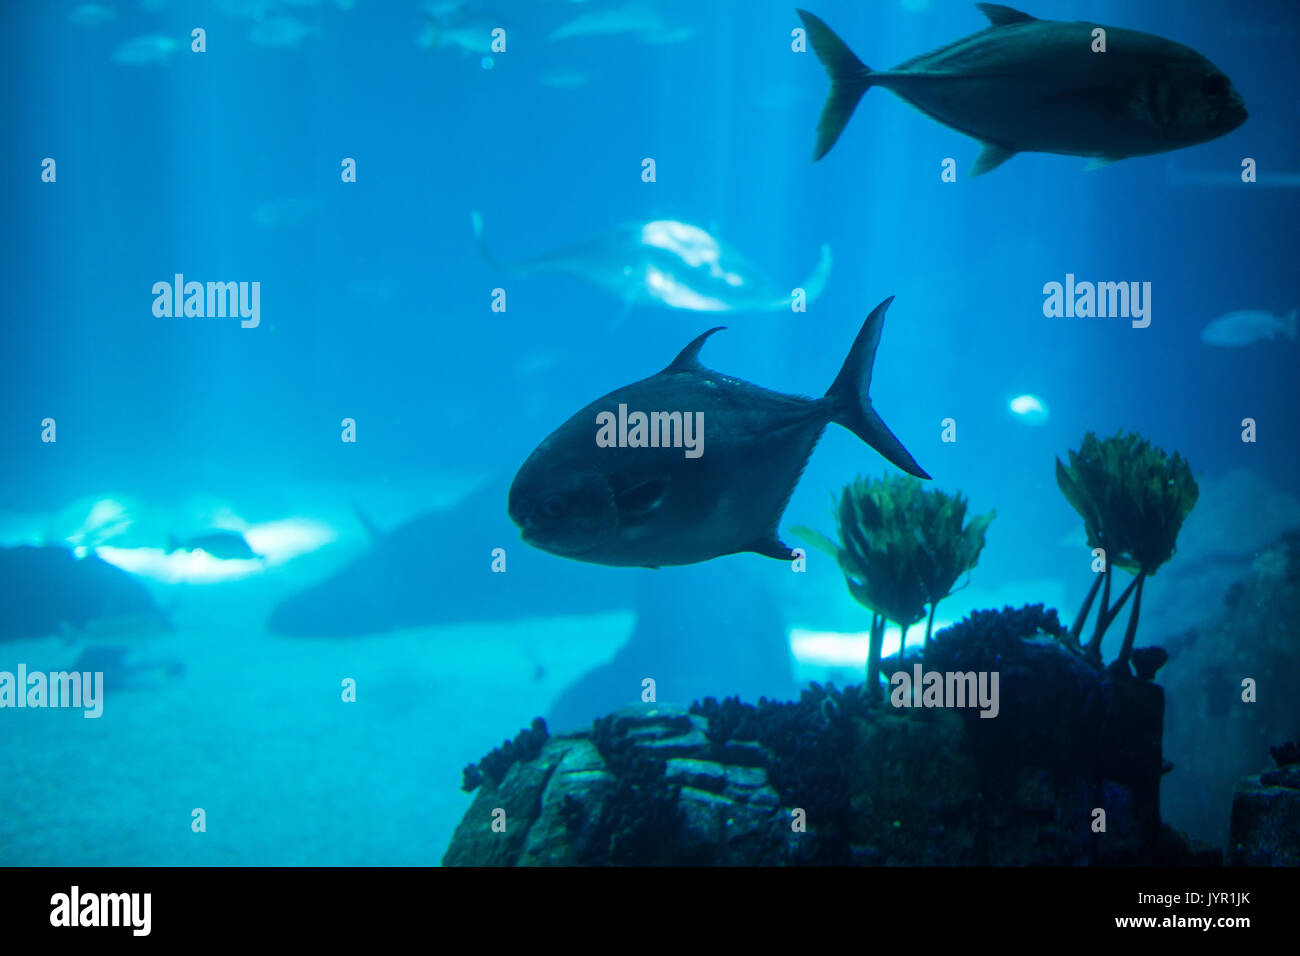 Fish swimming in a reef with blue ocean water - Stock Image